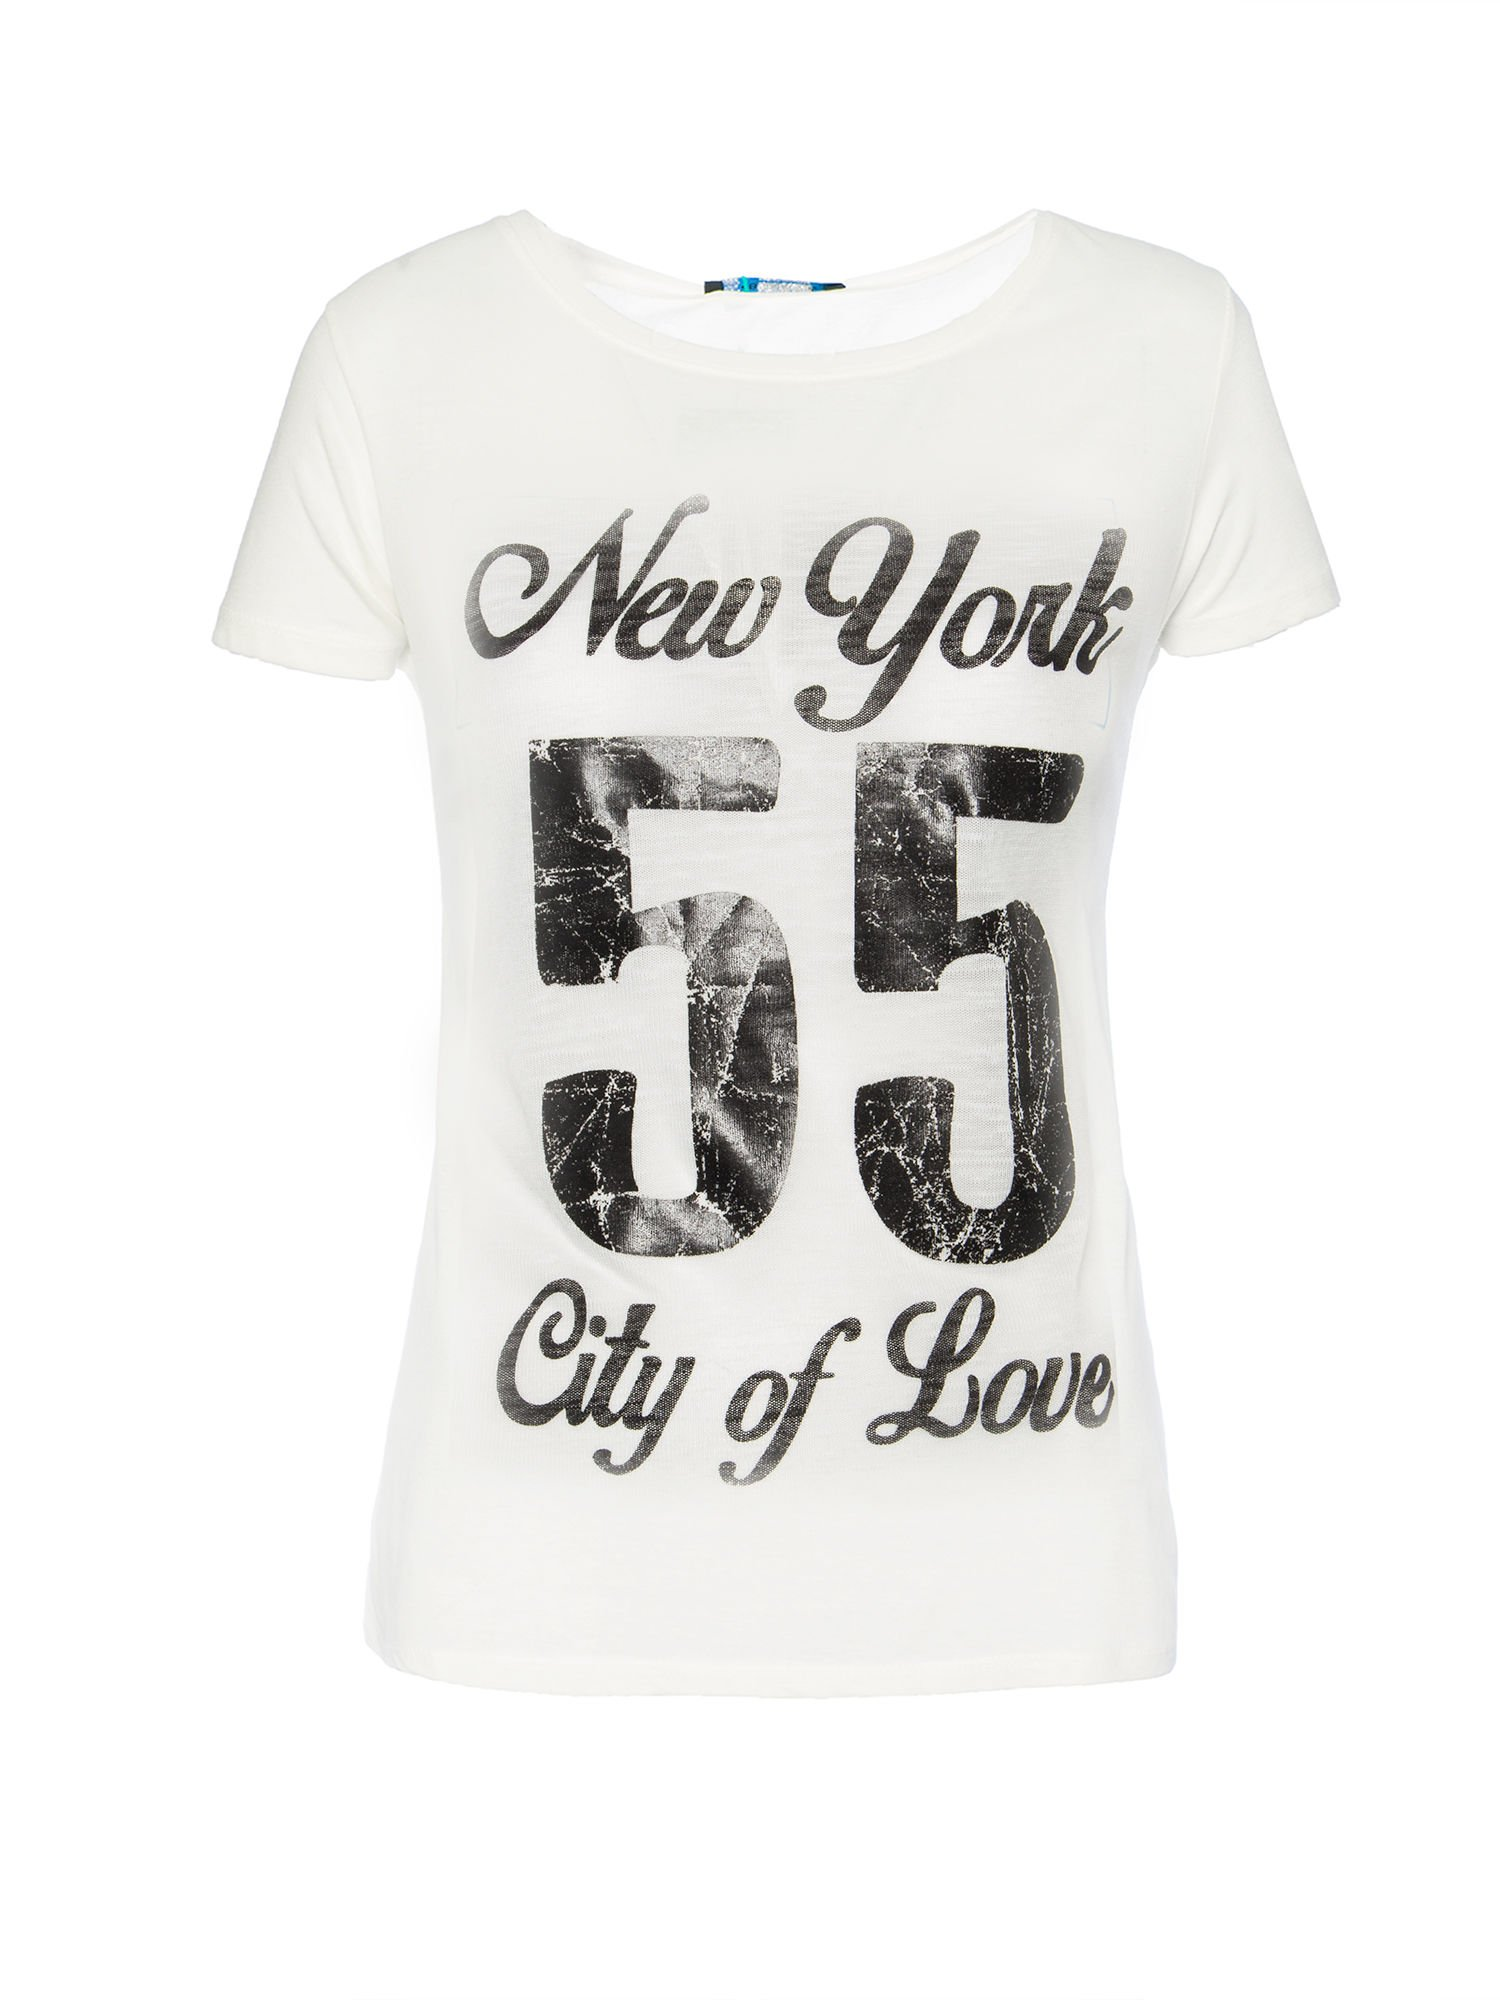 Biały t-shirt z napisem NEW YORK CITY OF LOVE 55                                  zdj.                                  1